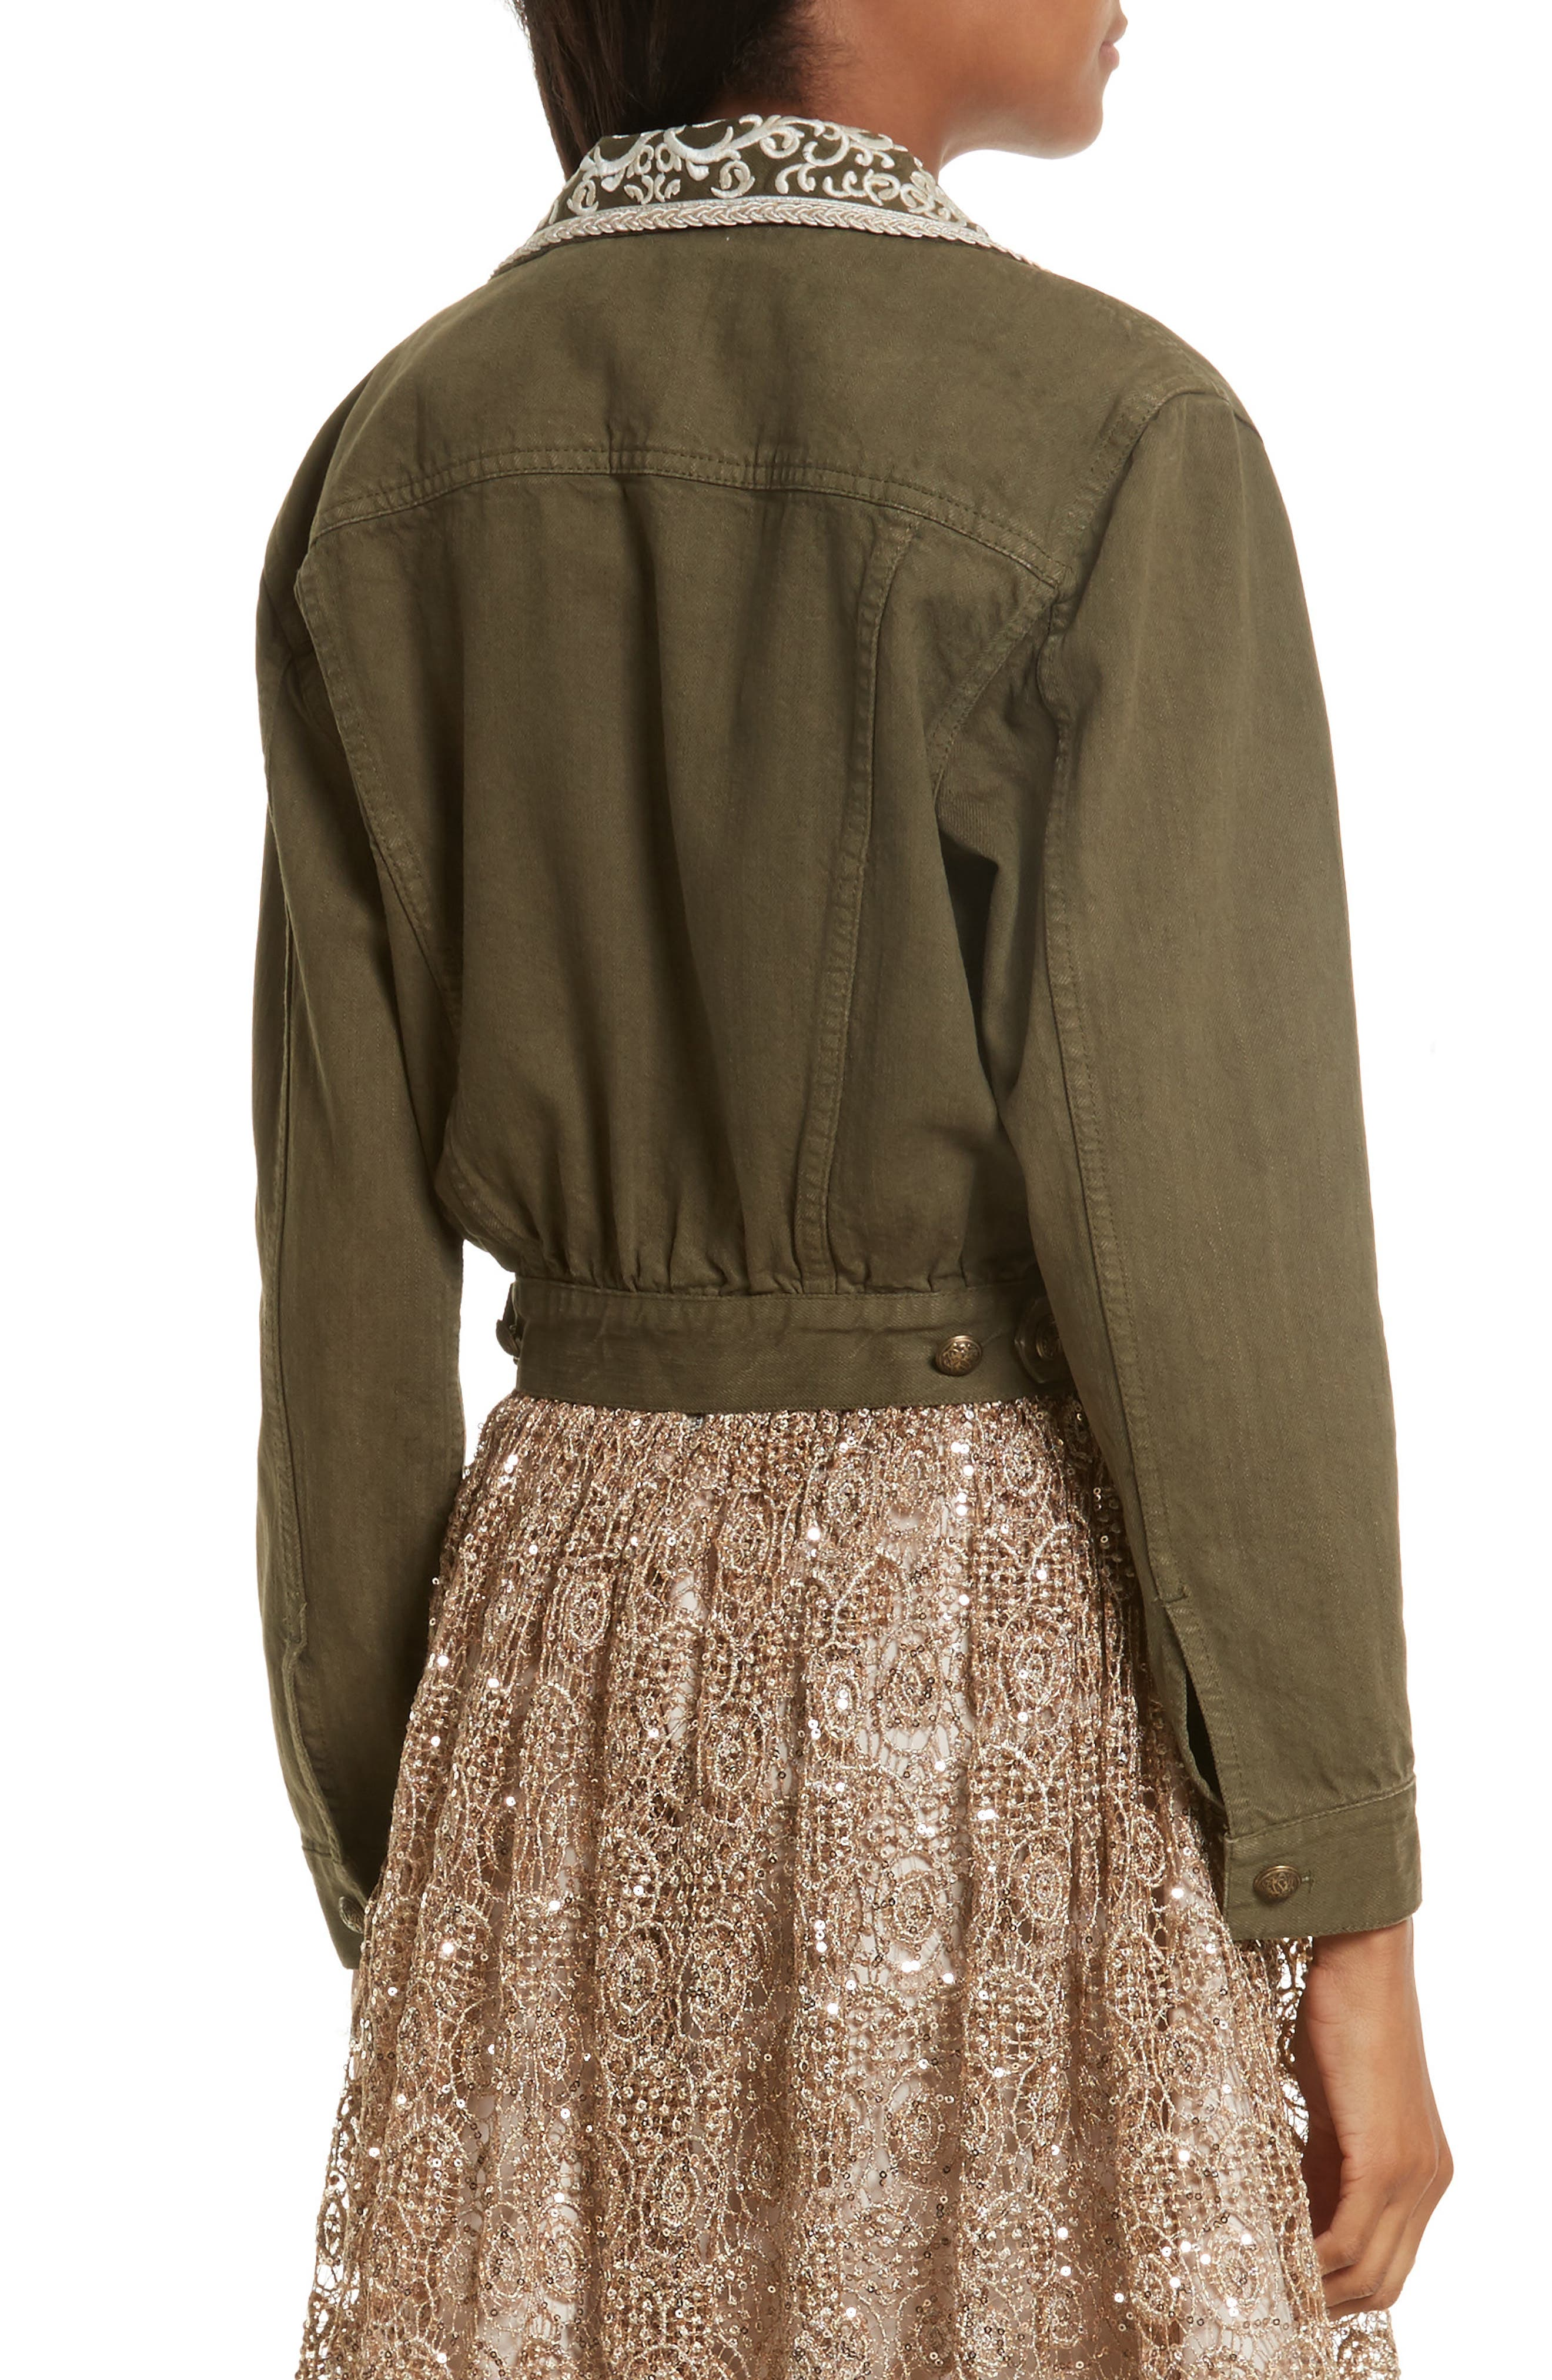 Chloe Embellished Crop Military Jacket,                             Alternate thumbnail 4, color,                             Army